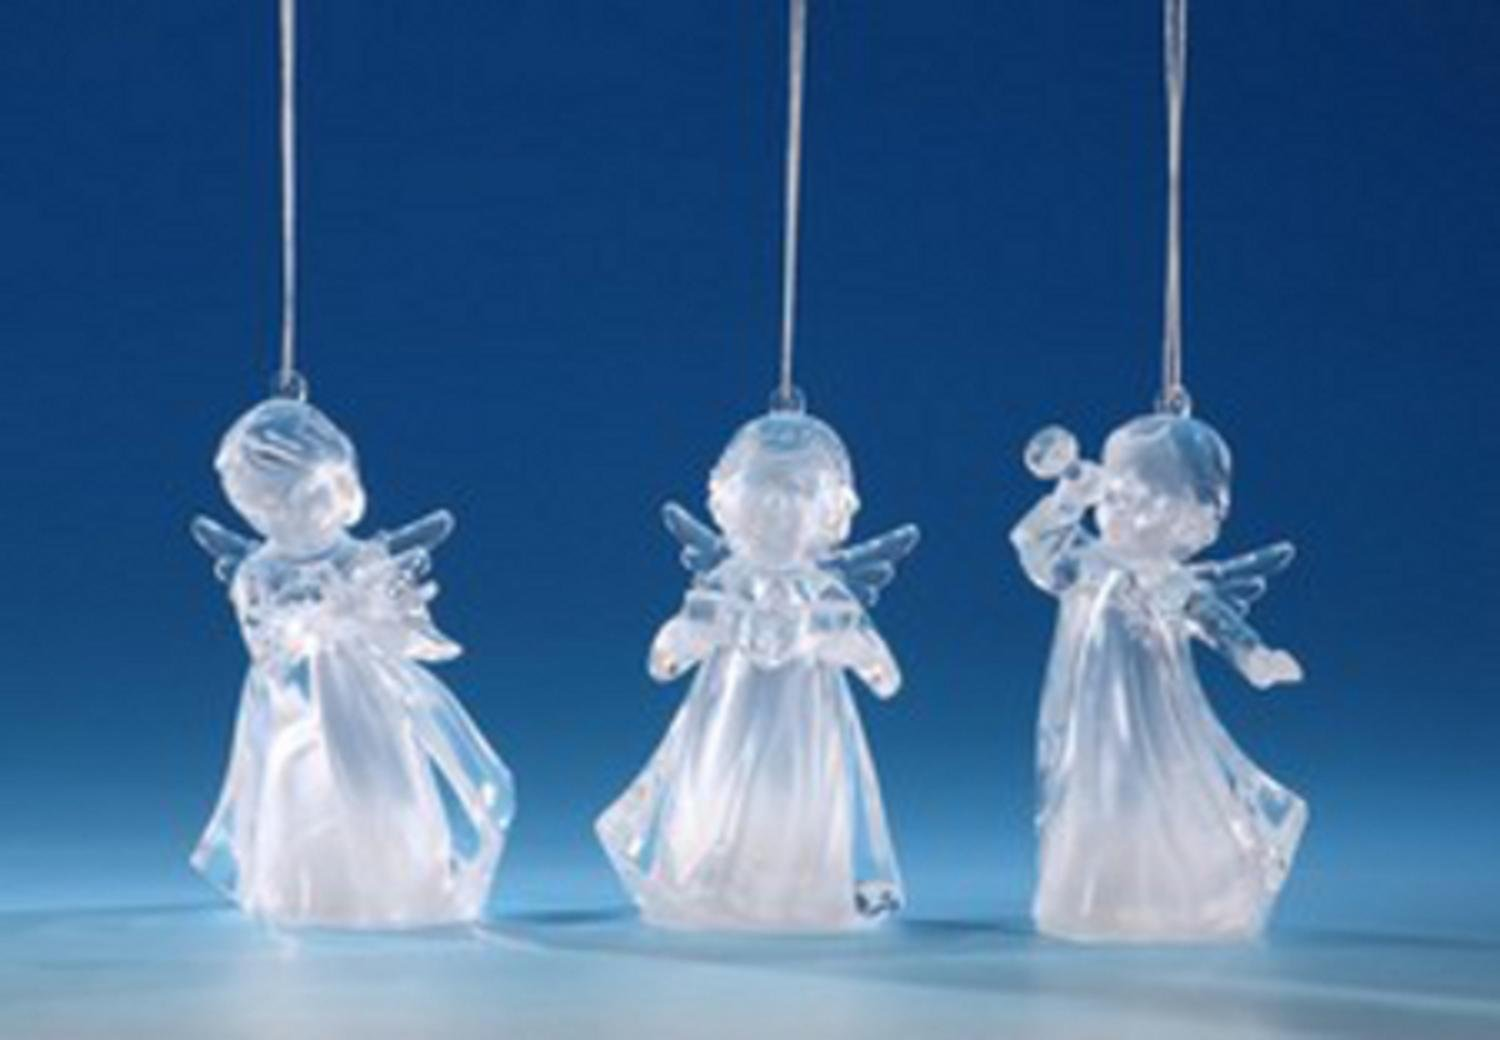 Pack of 6 Icy Crystal Illuminated Decorative Choir Girl Ornaments 4.25''